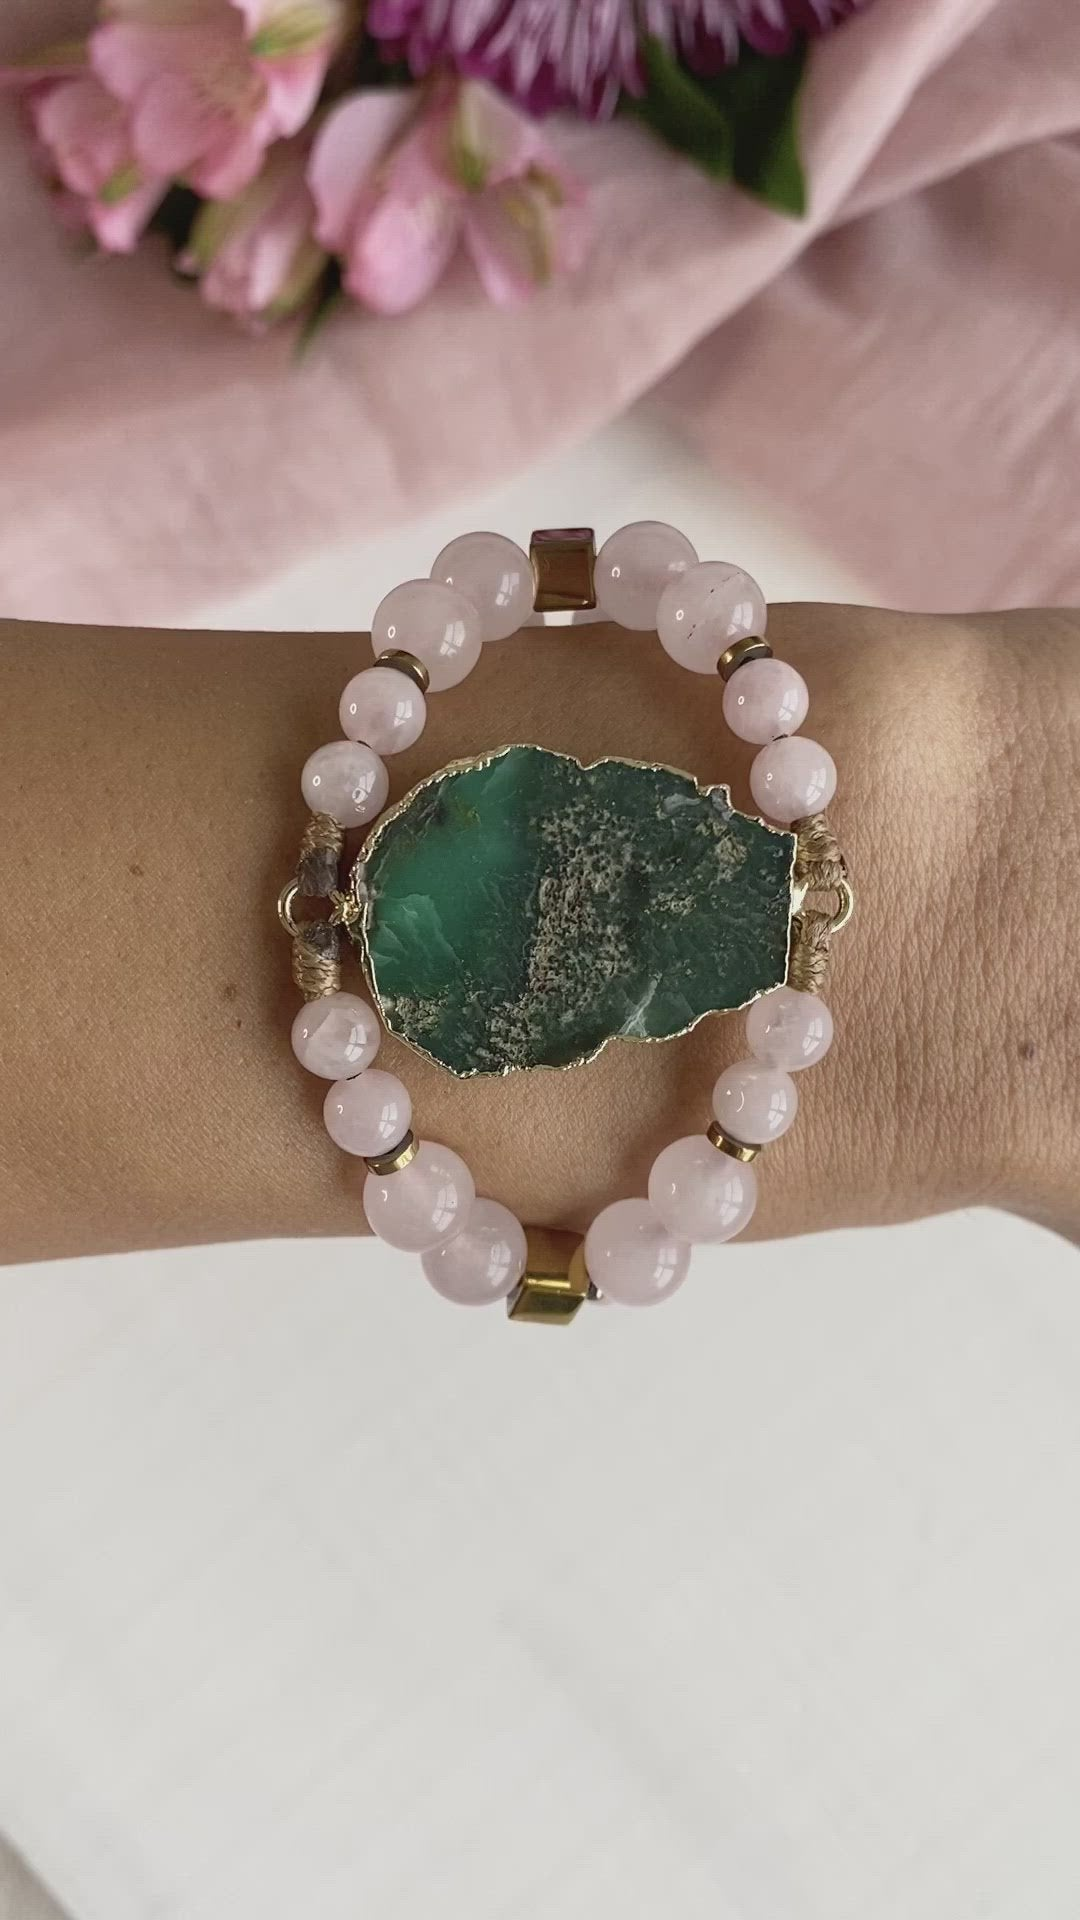 Australian Chrysoprase statament bracelet with Rose Quartz and Hematite